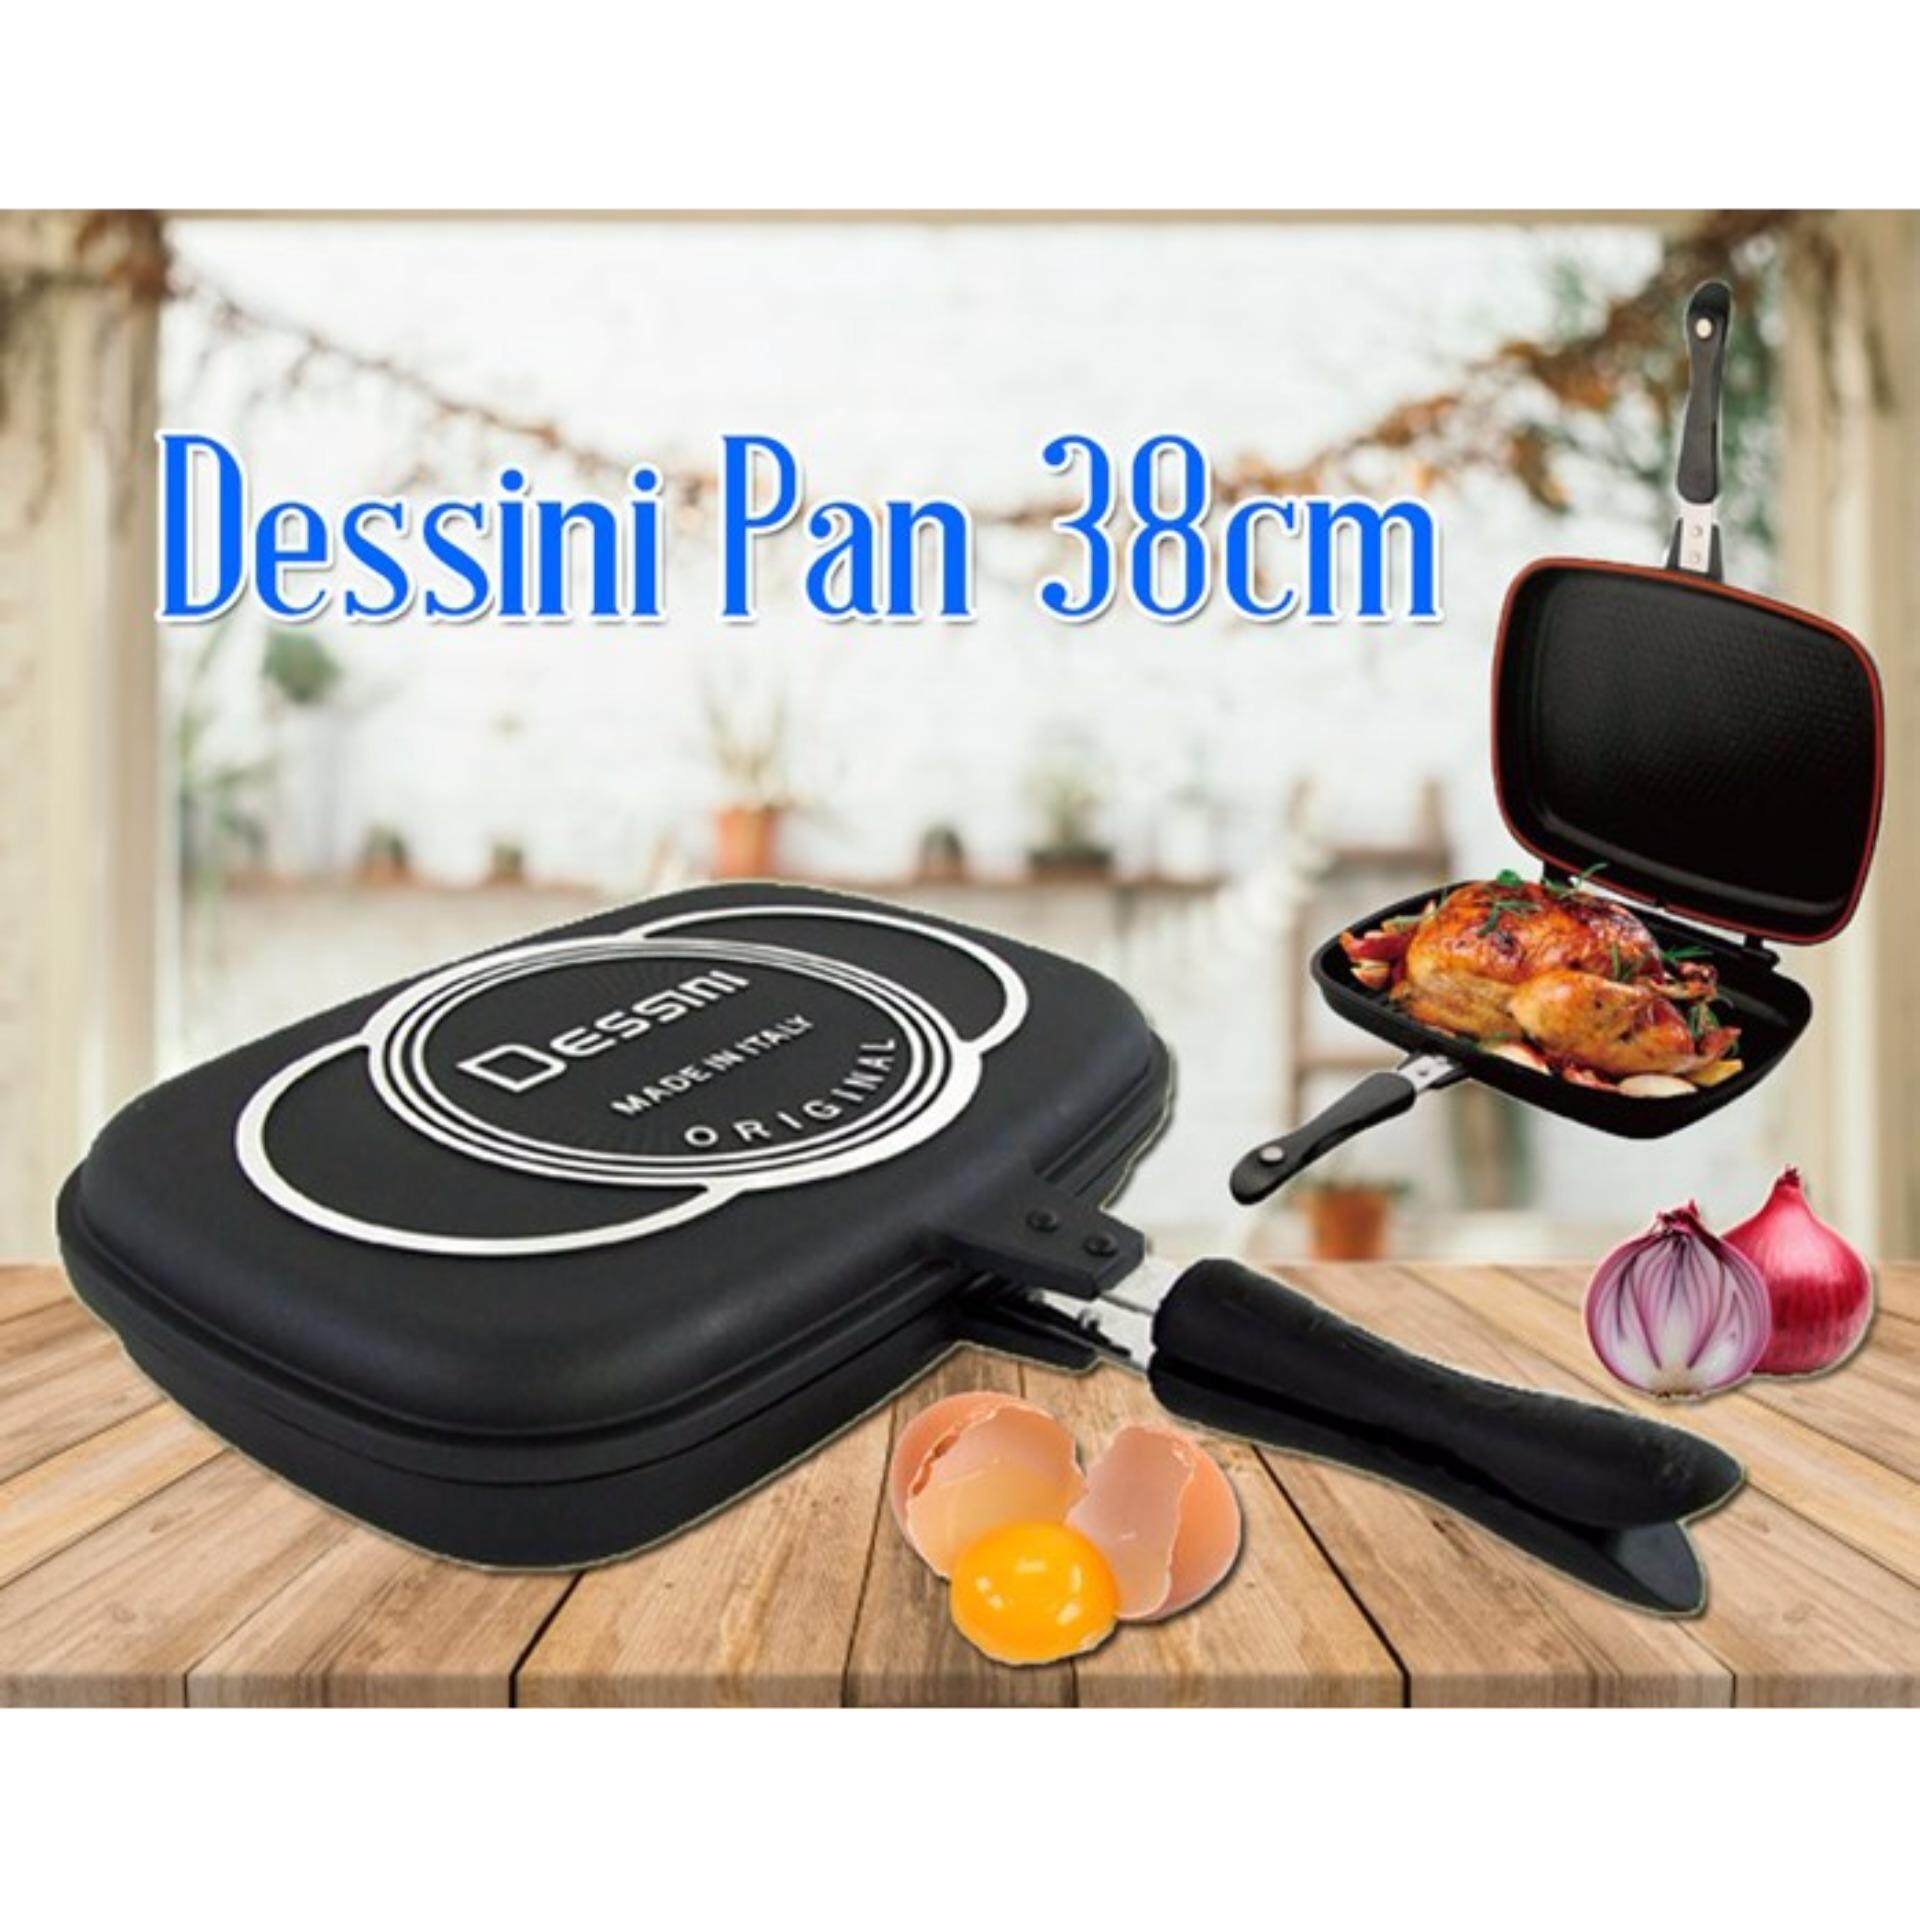 Bliss High Quality Dessini ITALY Double Sided Fry Pan - 36 cm